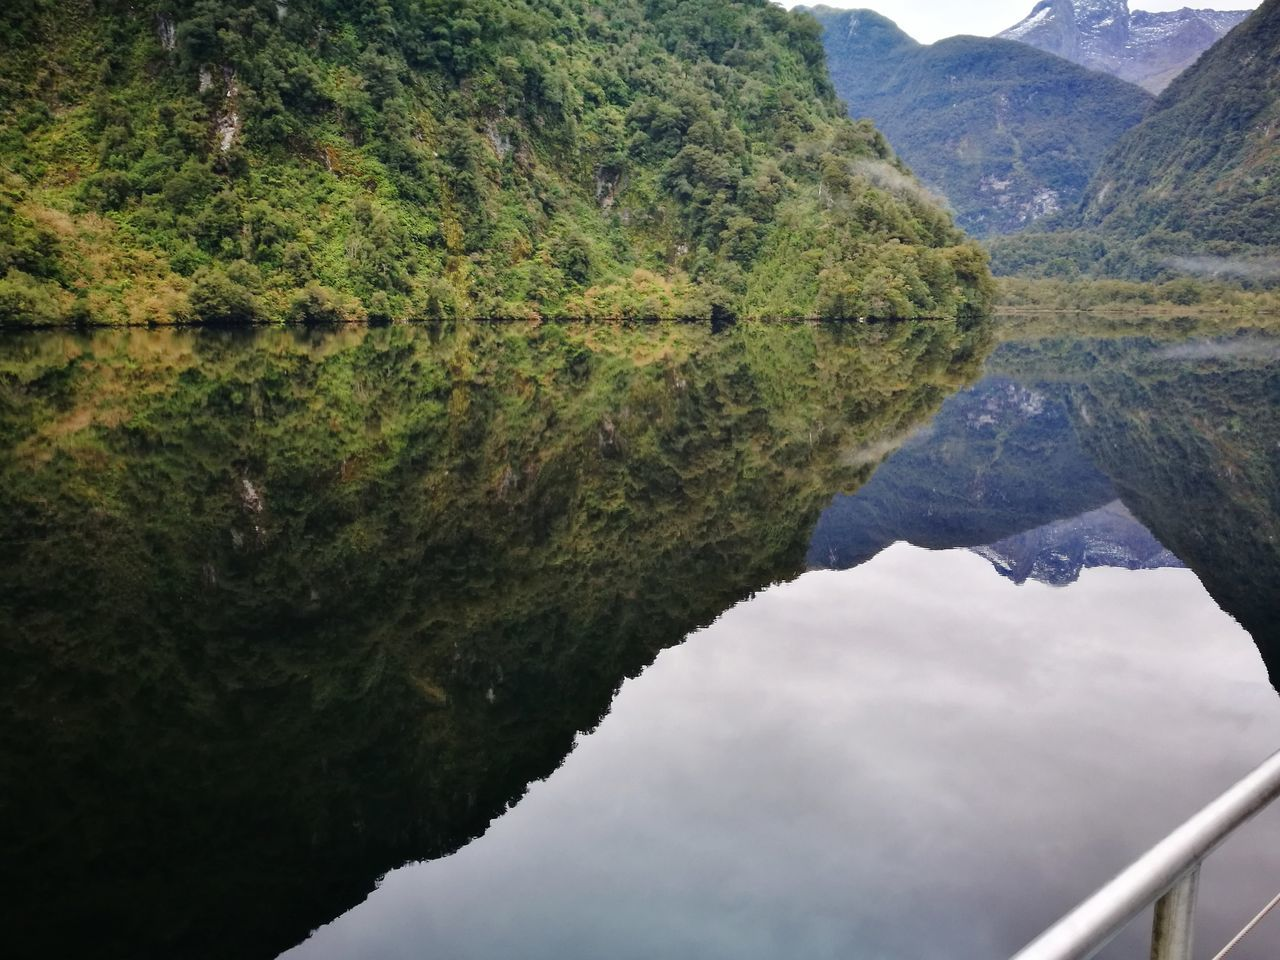 Doubtful Sound Reflection Water Mountain Outdoors Nature Beauty In Nature New Zealand The Great Outdoors - 2017 EyeEm Awards